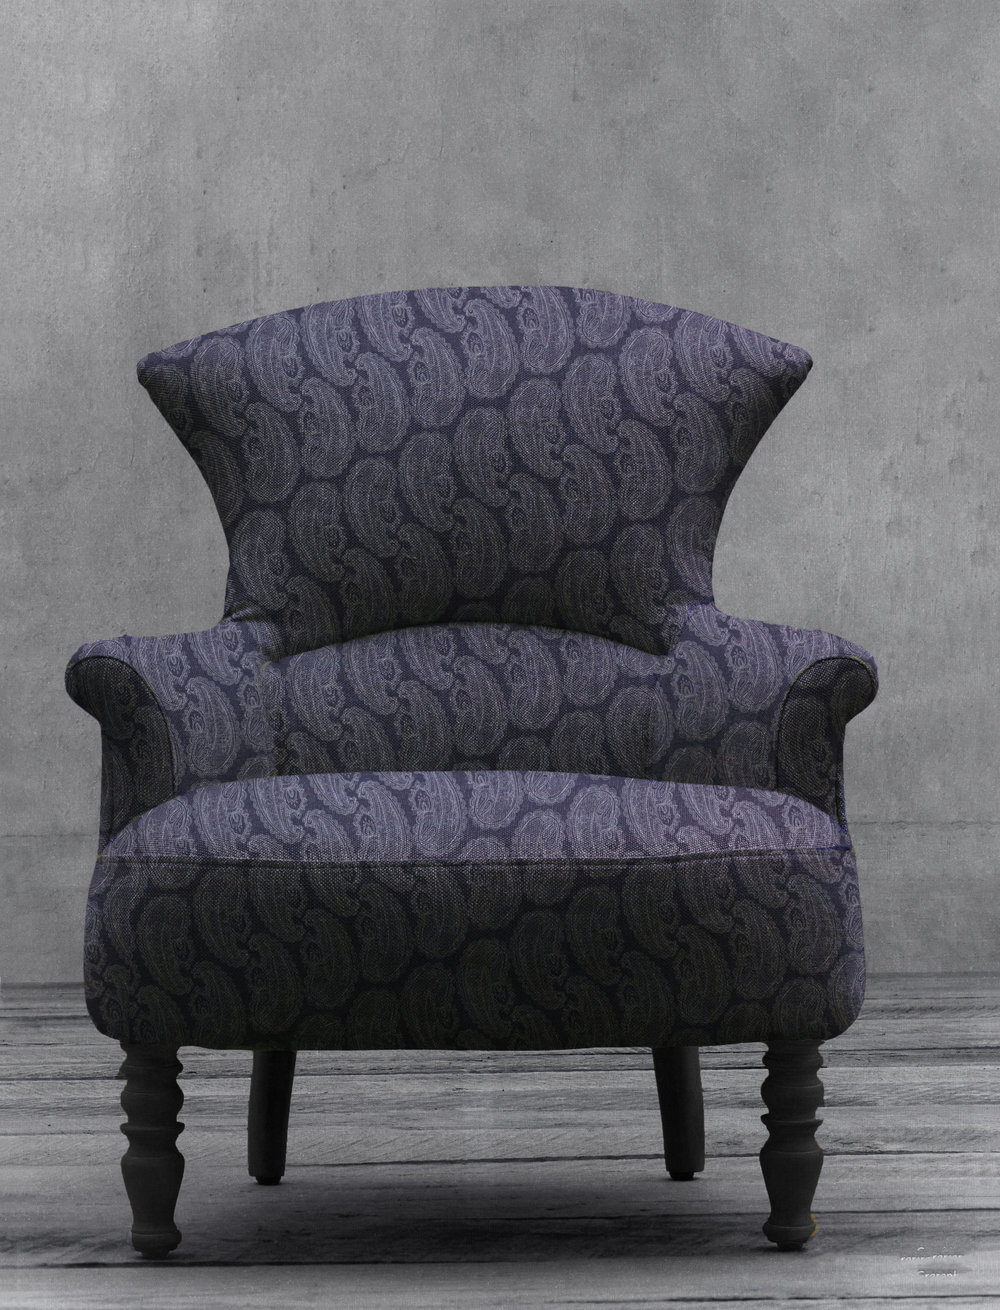 chair paisley.jpg